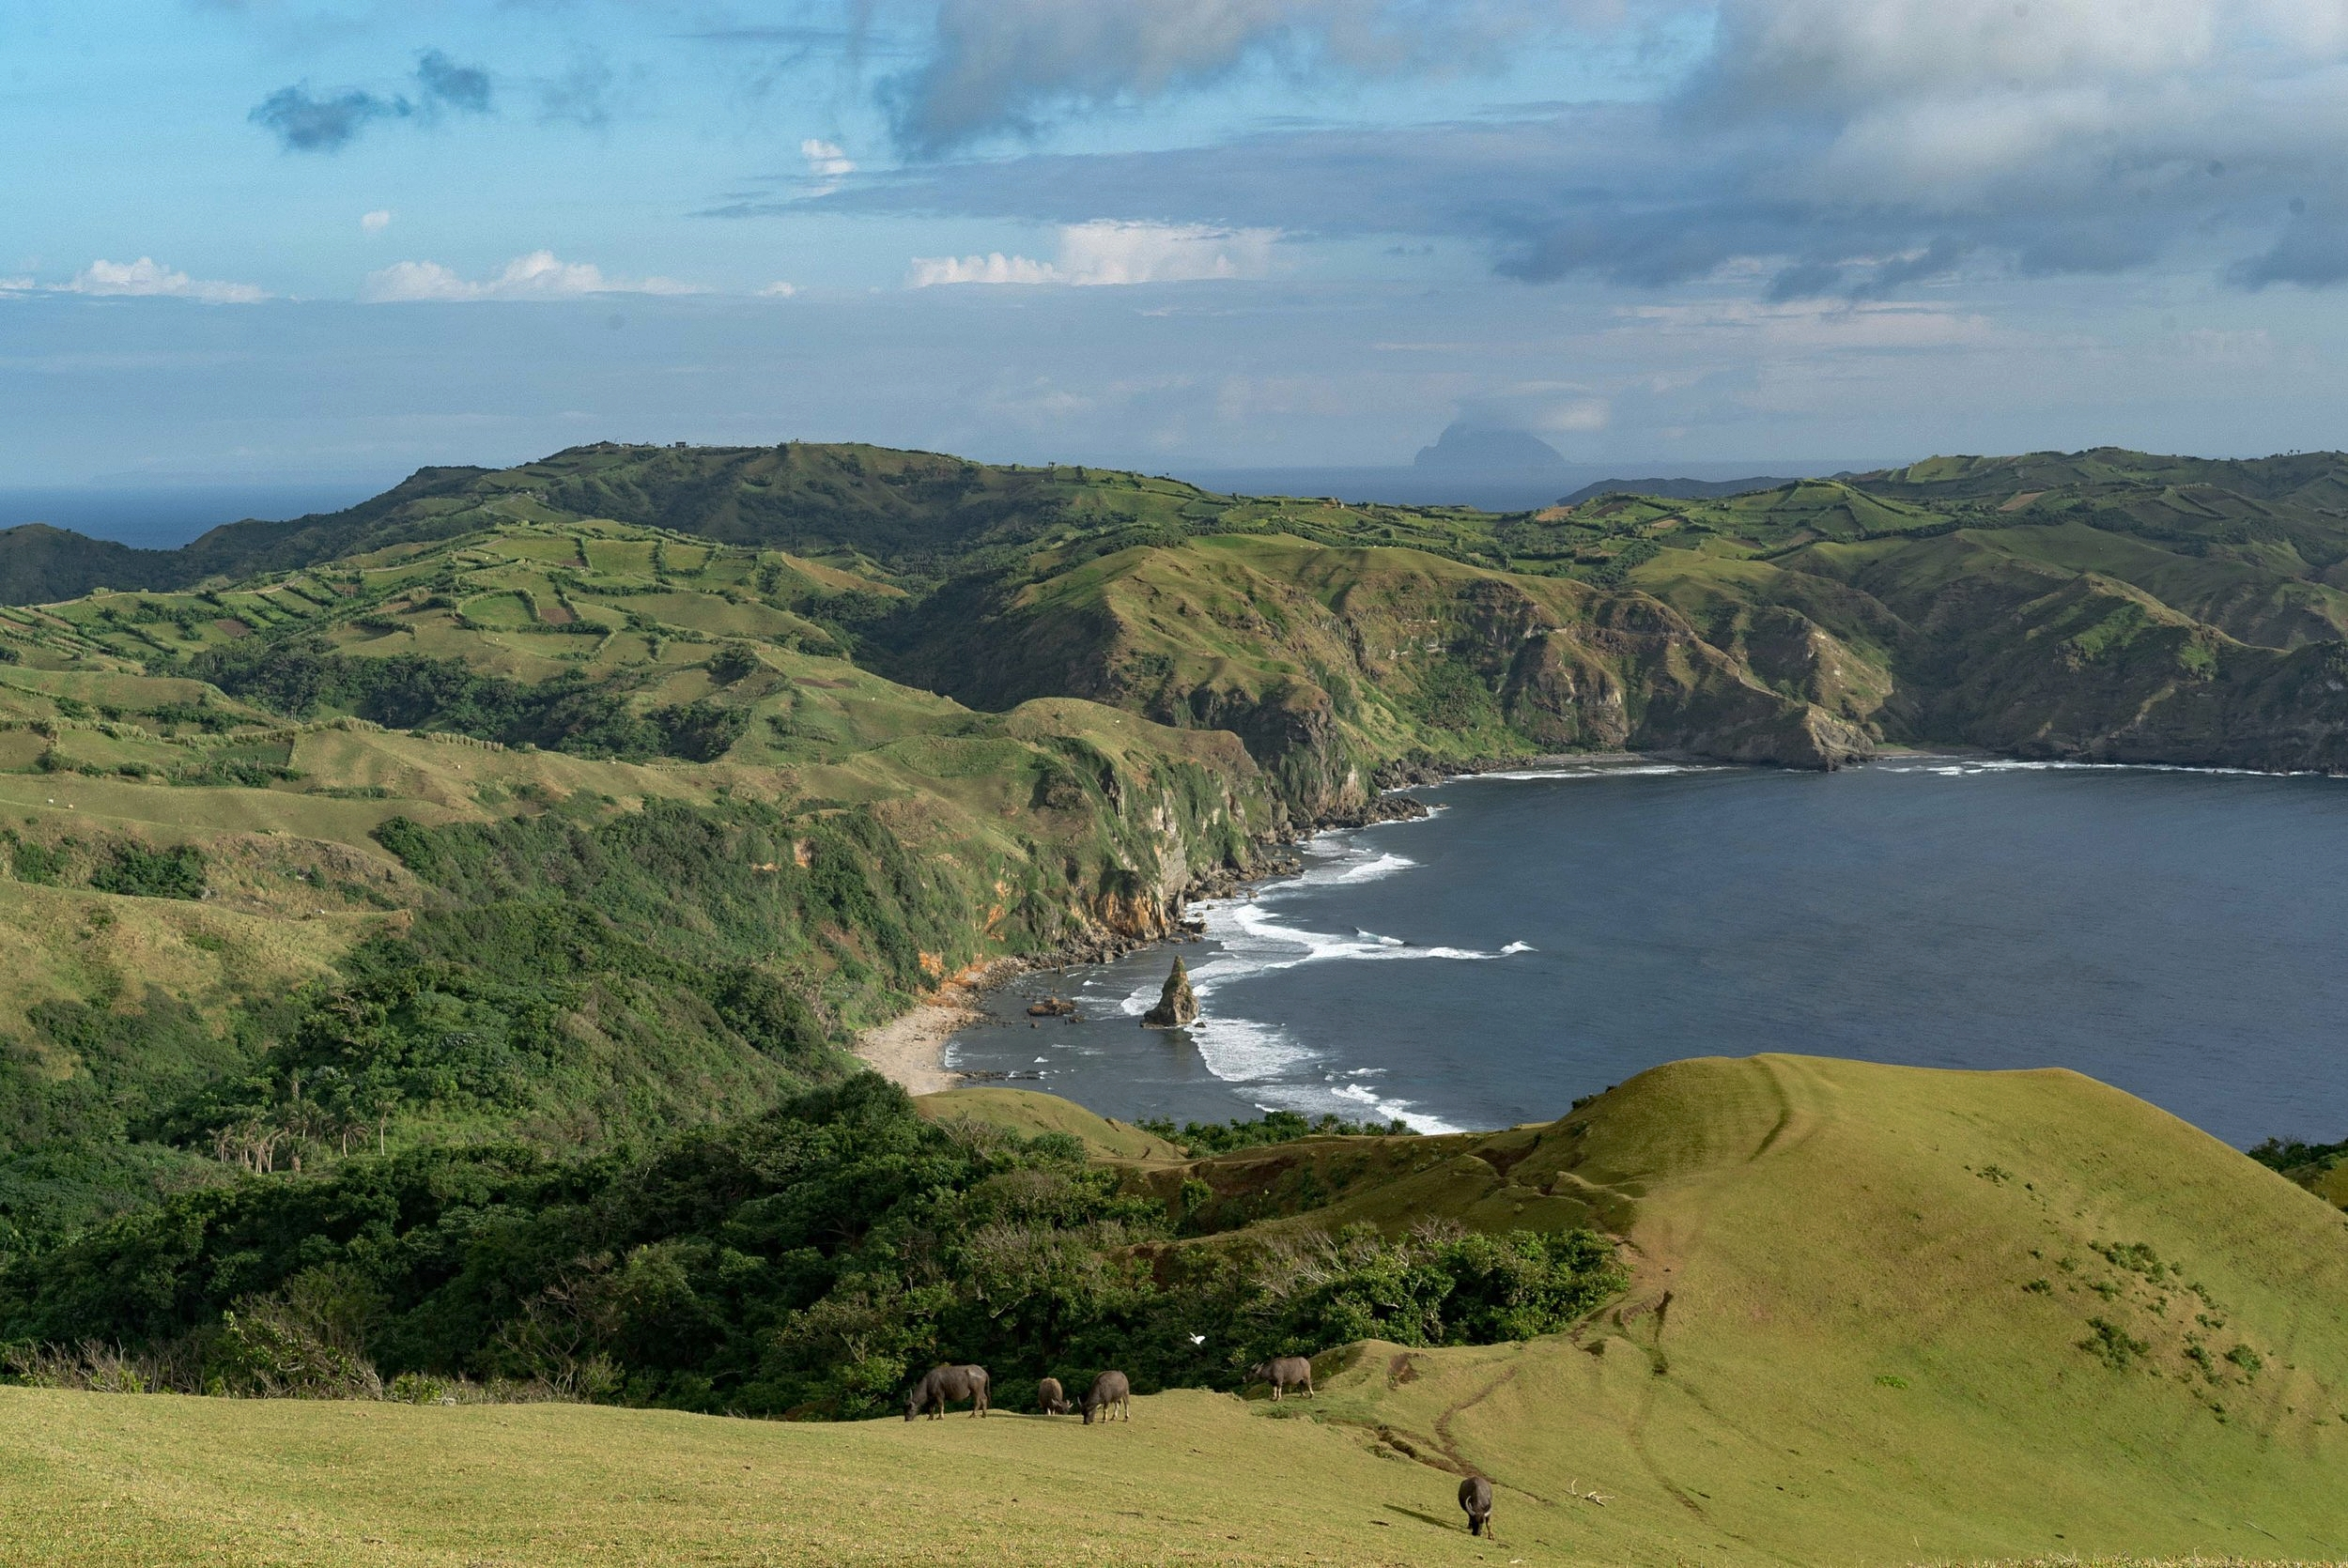 Batanes is the northernmost province in the Philippines.